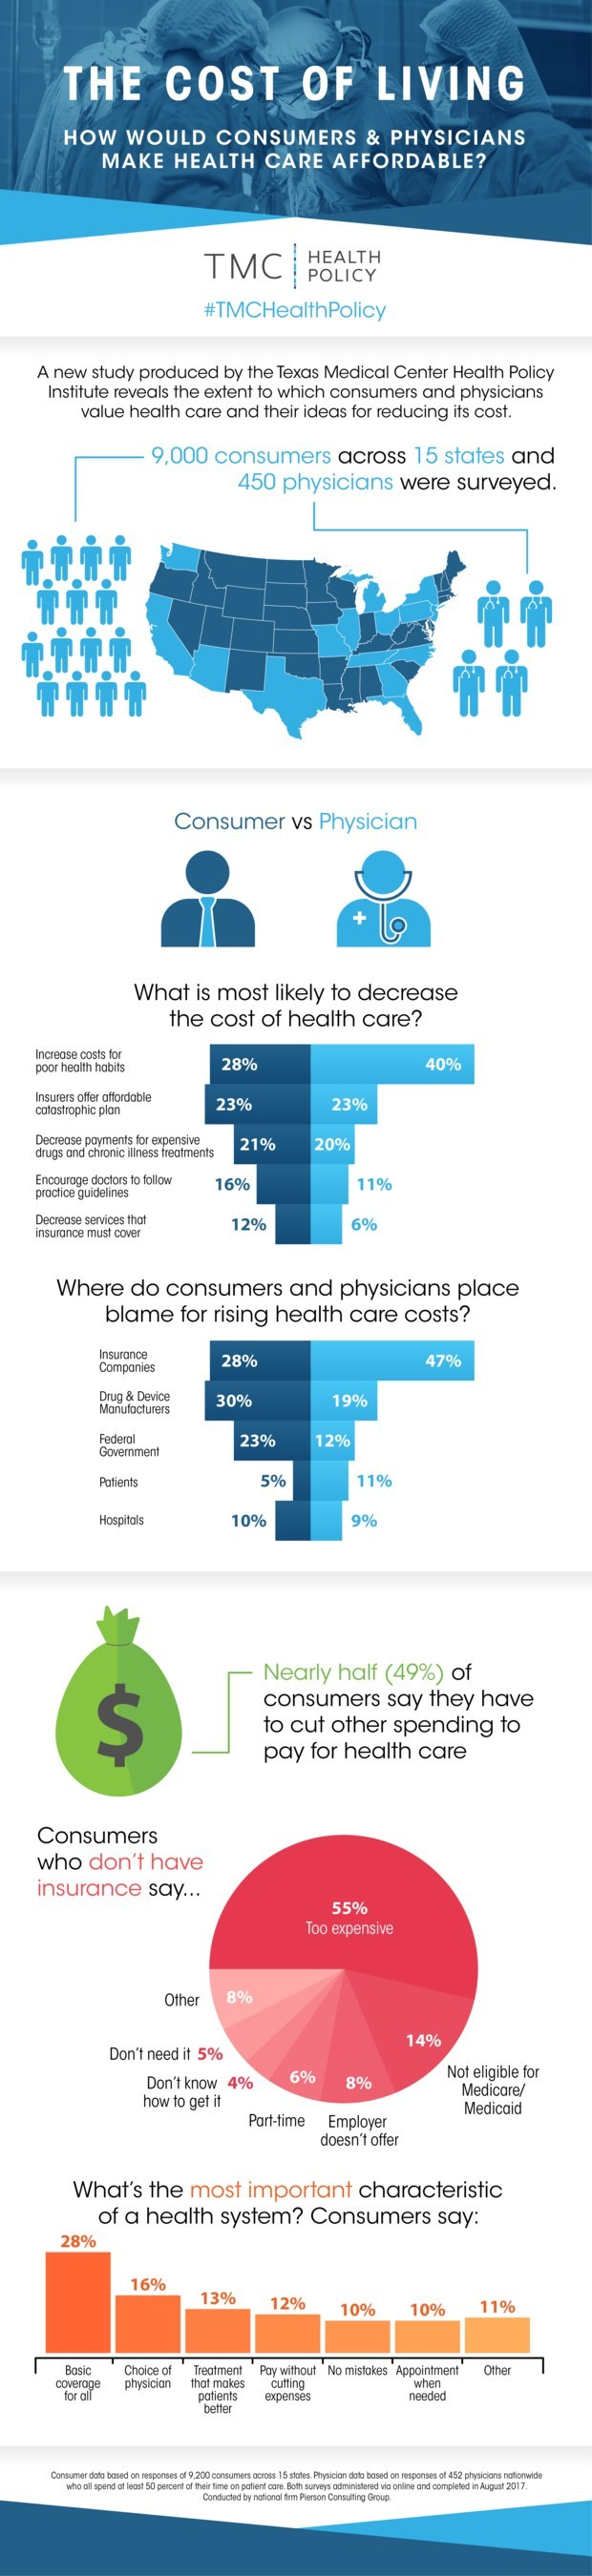 Texas Medical Center Health Policy Institute Infographic